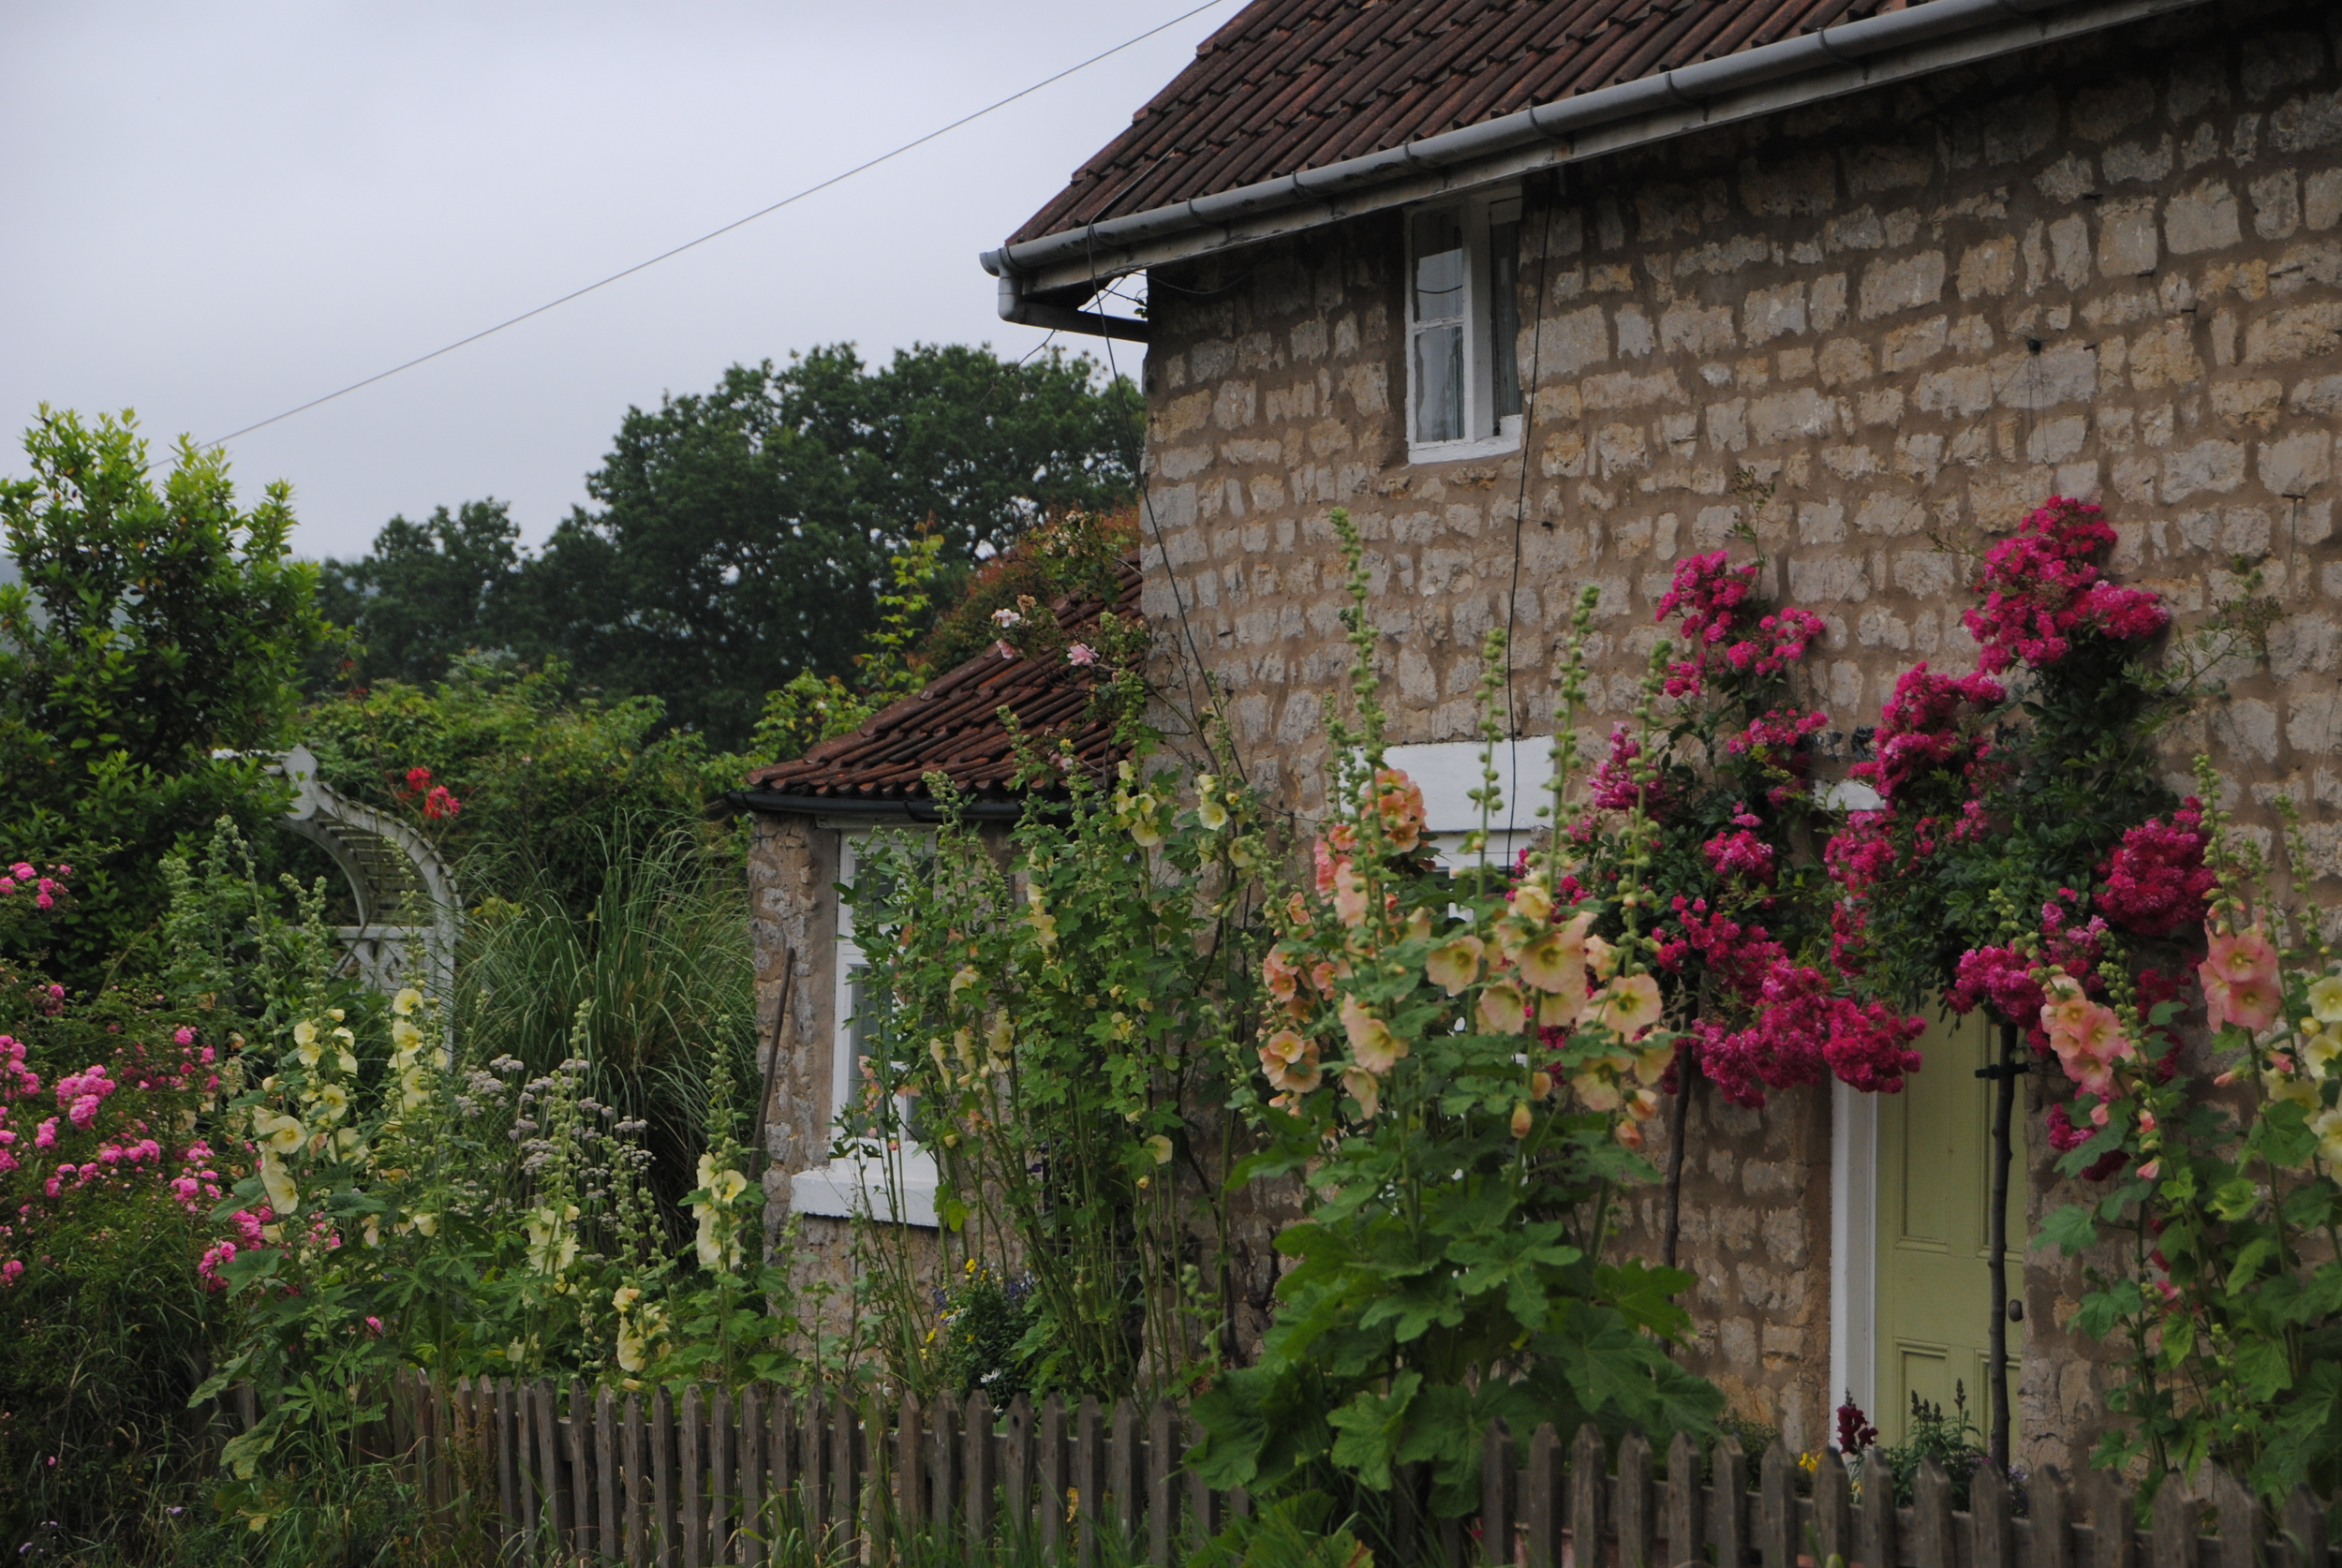 Old houses and walls are surrounded by flowers everywhere I drove.